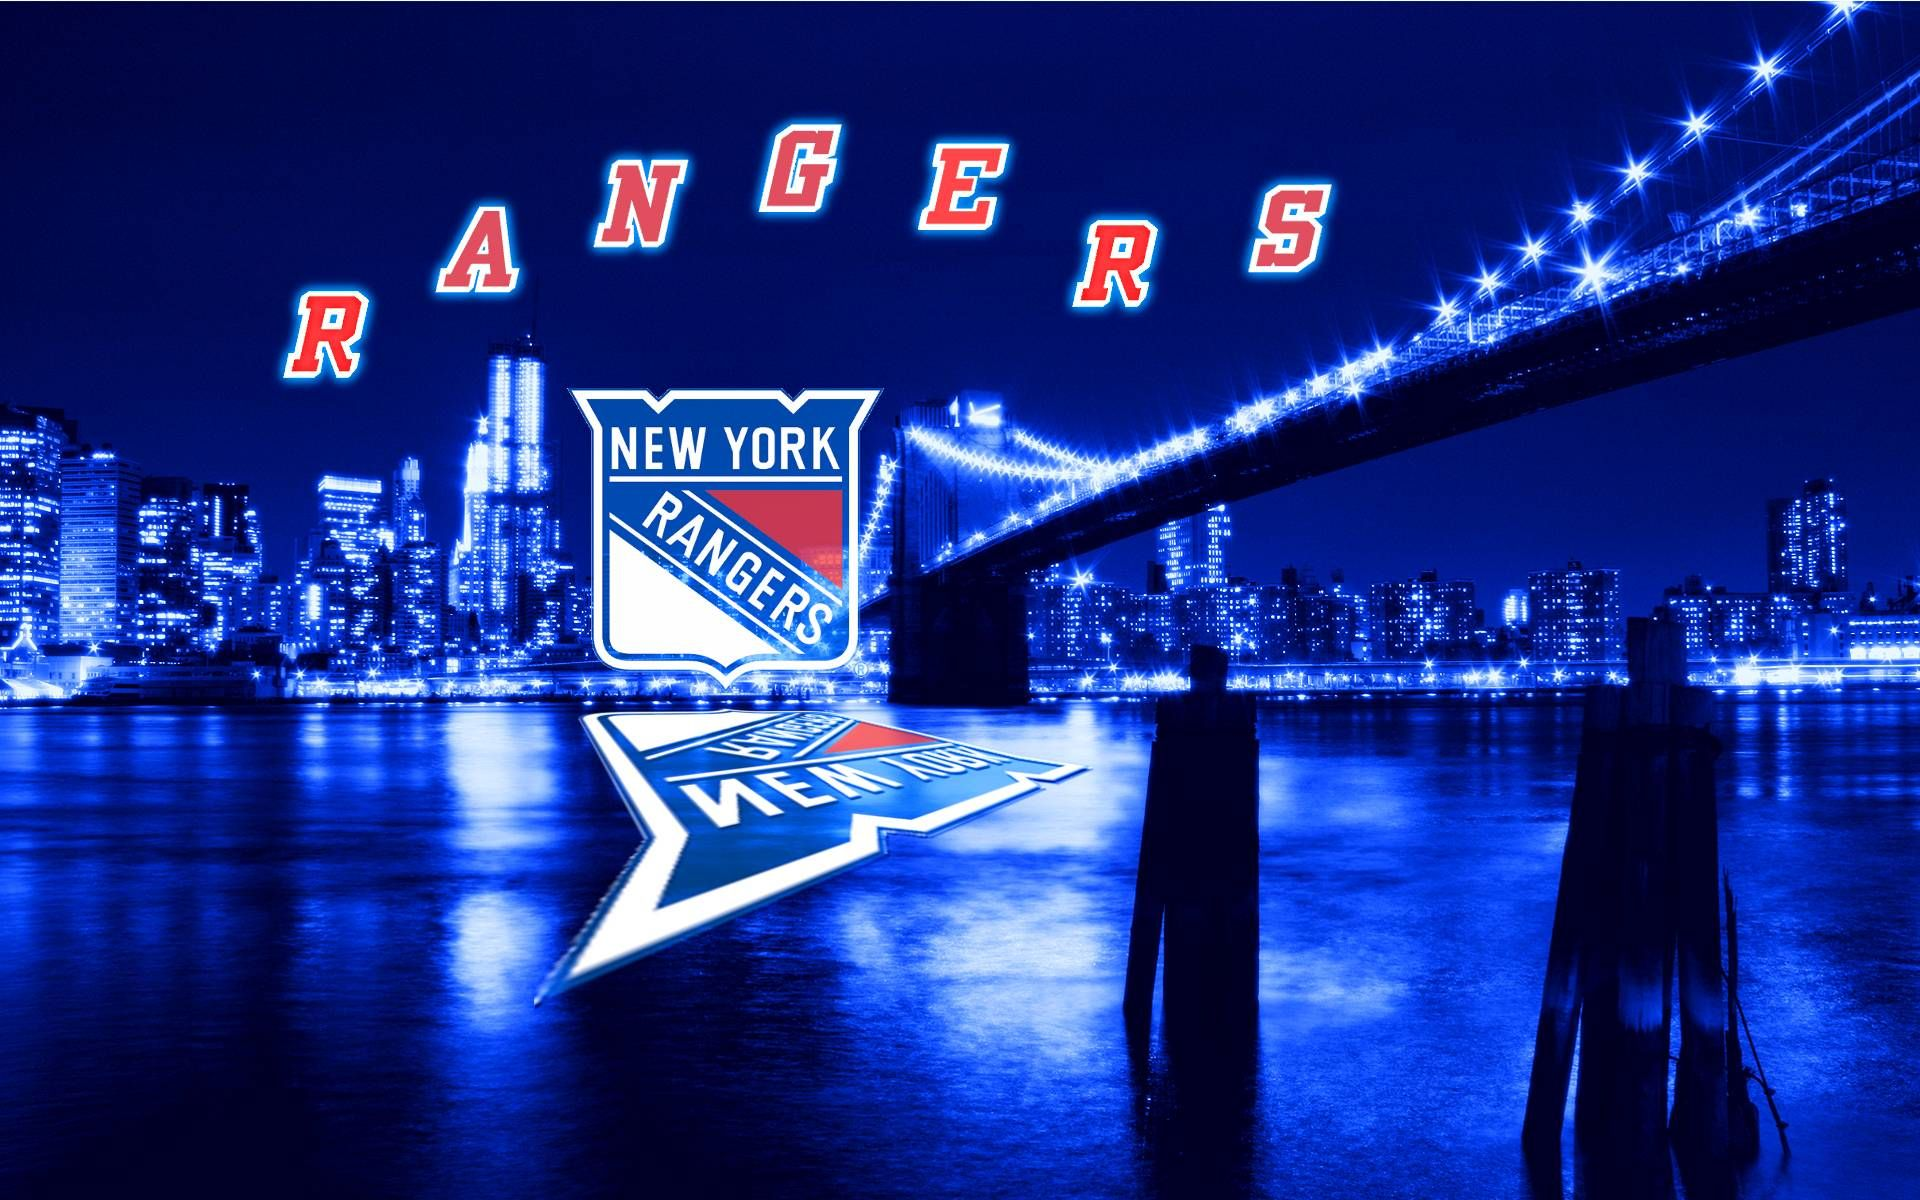 Ny Rangers Wallpaper Images Wallpapers 2020 New York Rangers